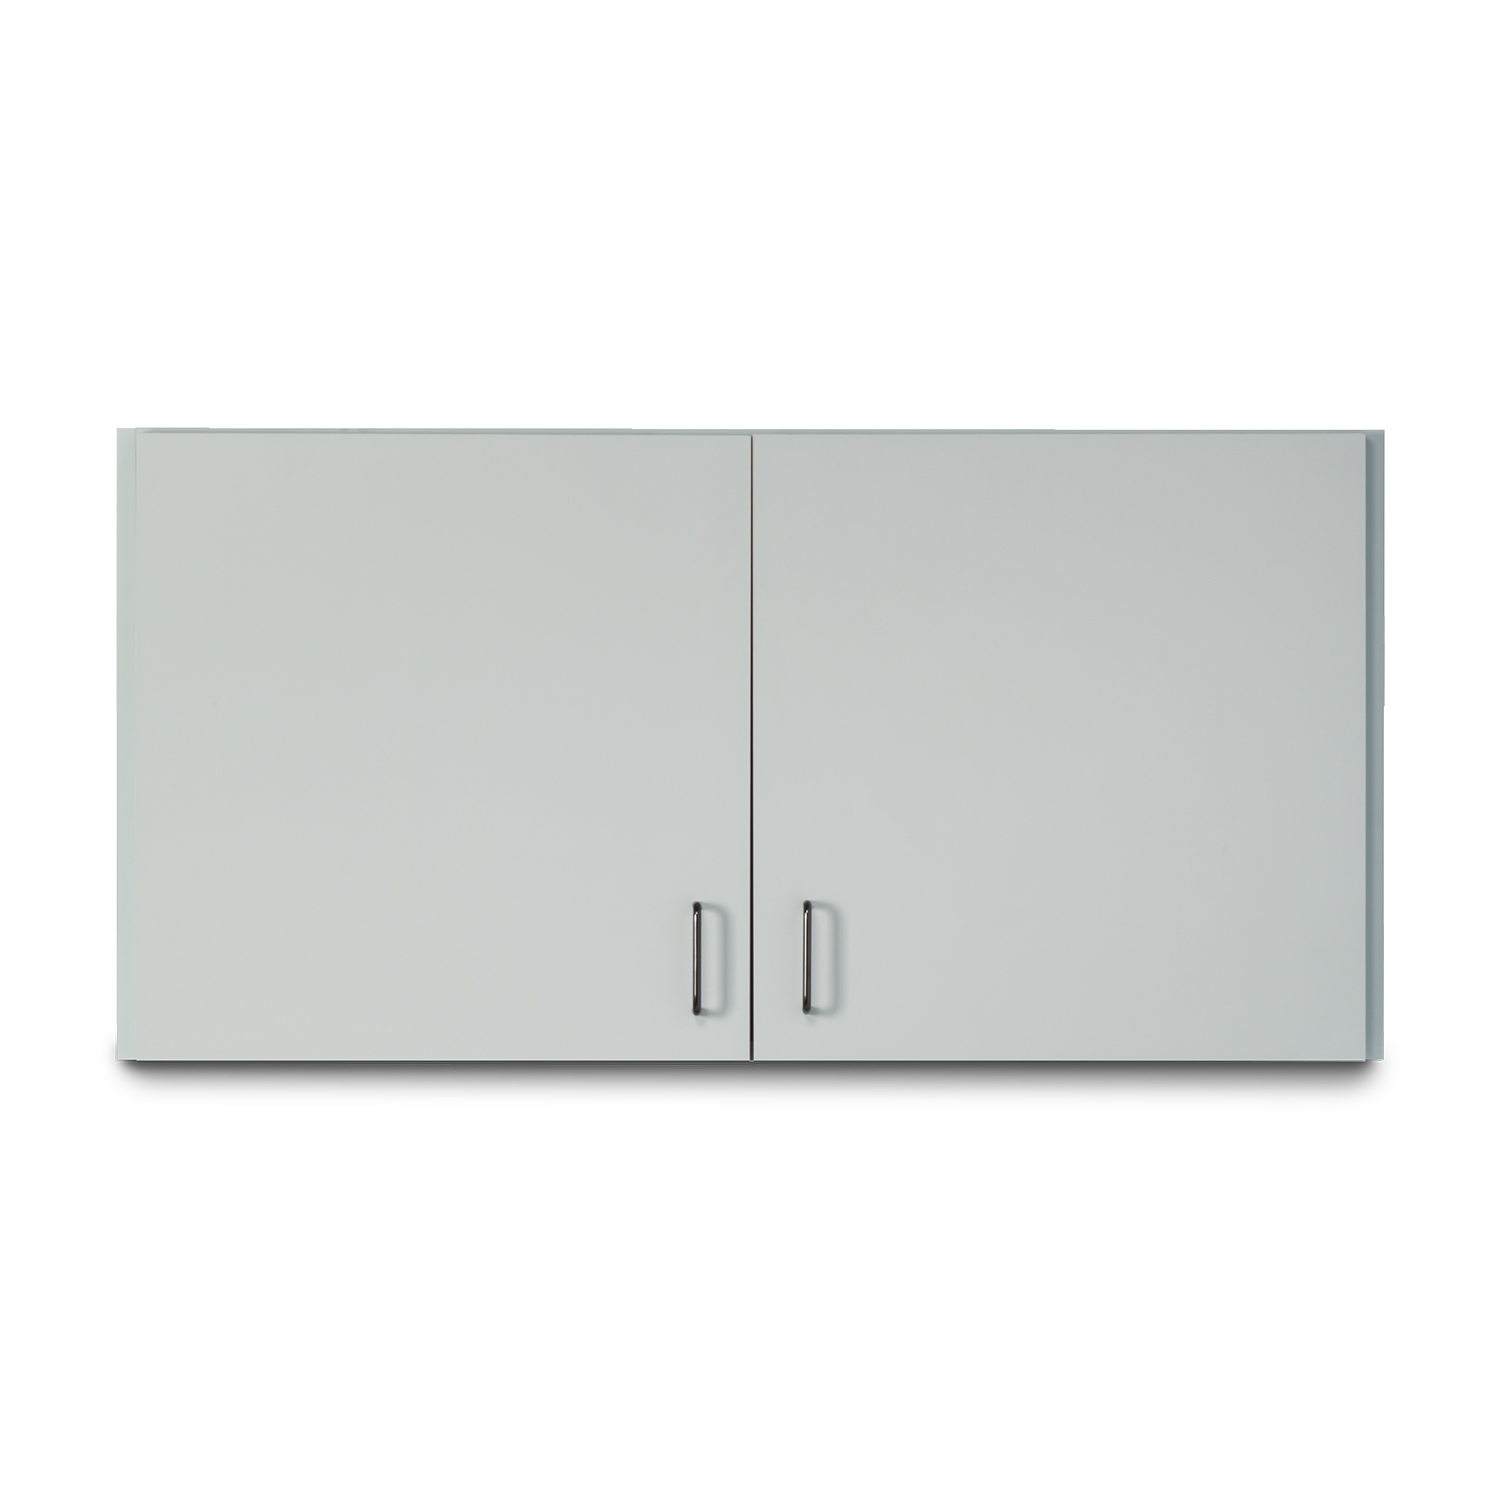 Clinton Wall Cabinet with 2 Doors - 48 in